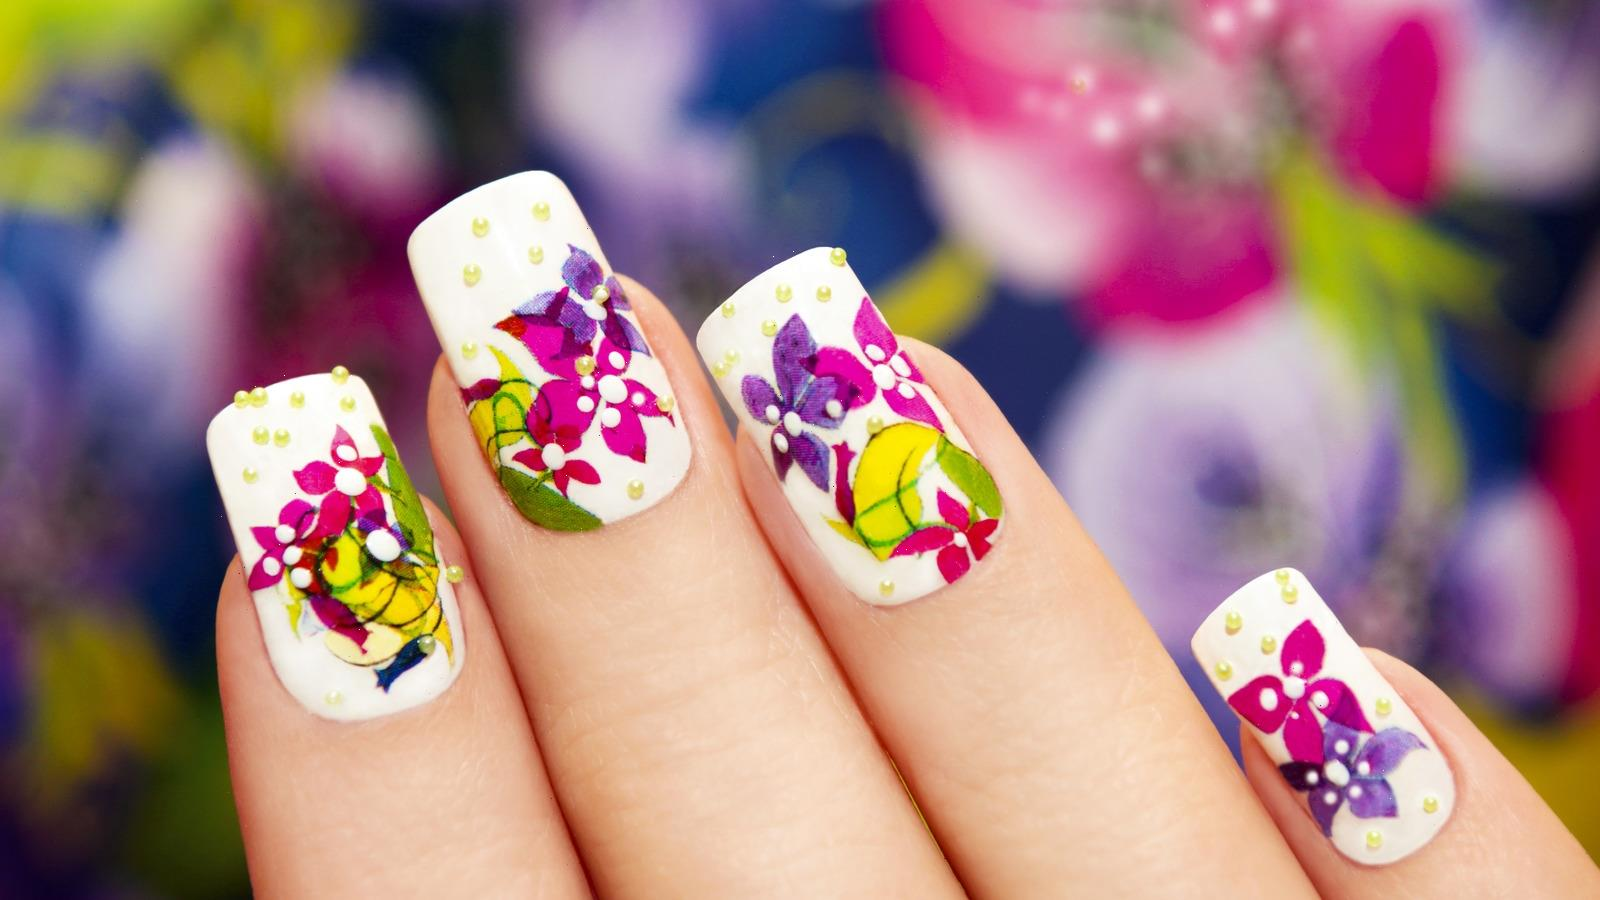 The Simple Hack For Instant Nail Art Without Drying Time